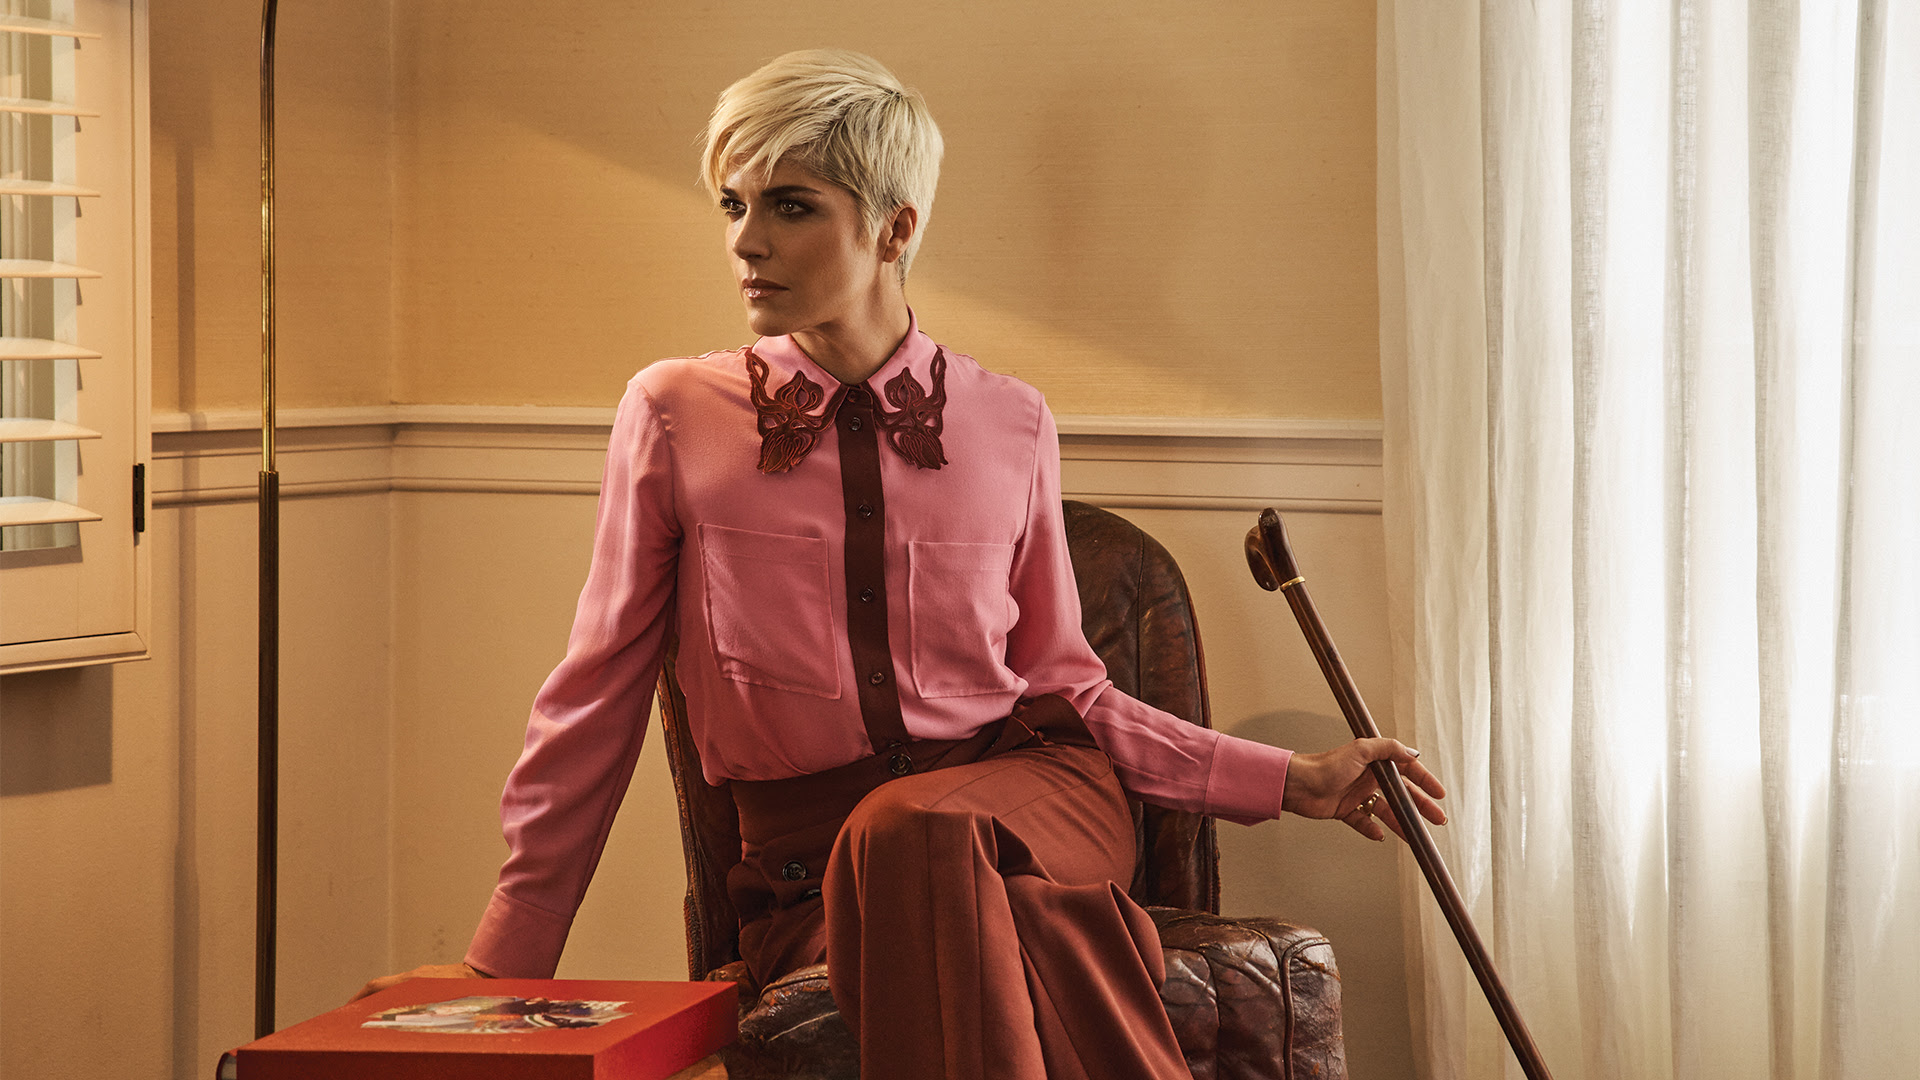 Selma Blair, a woman with short blonde hair sits on a chair with her walking cane in one hand. She is dressed in purple and red